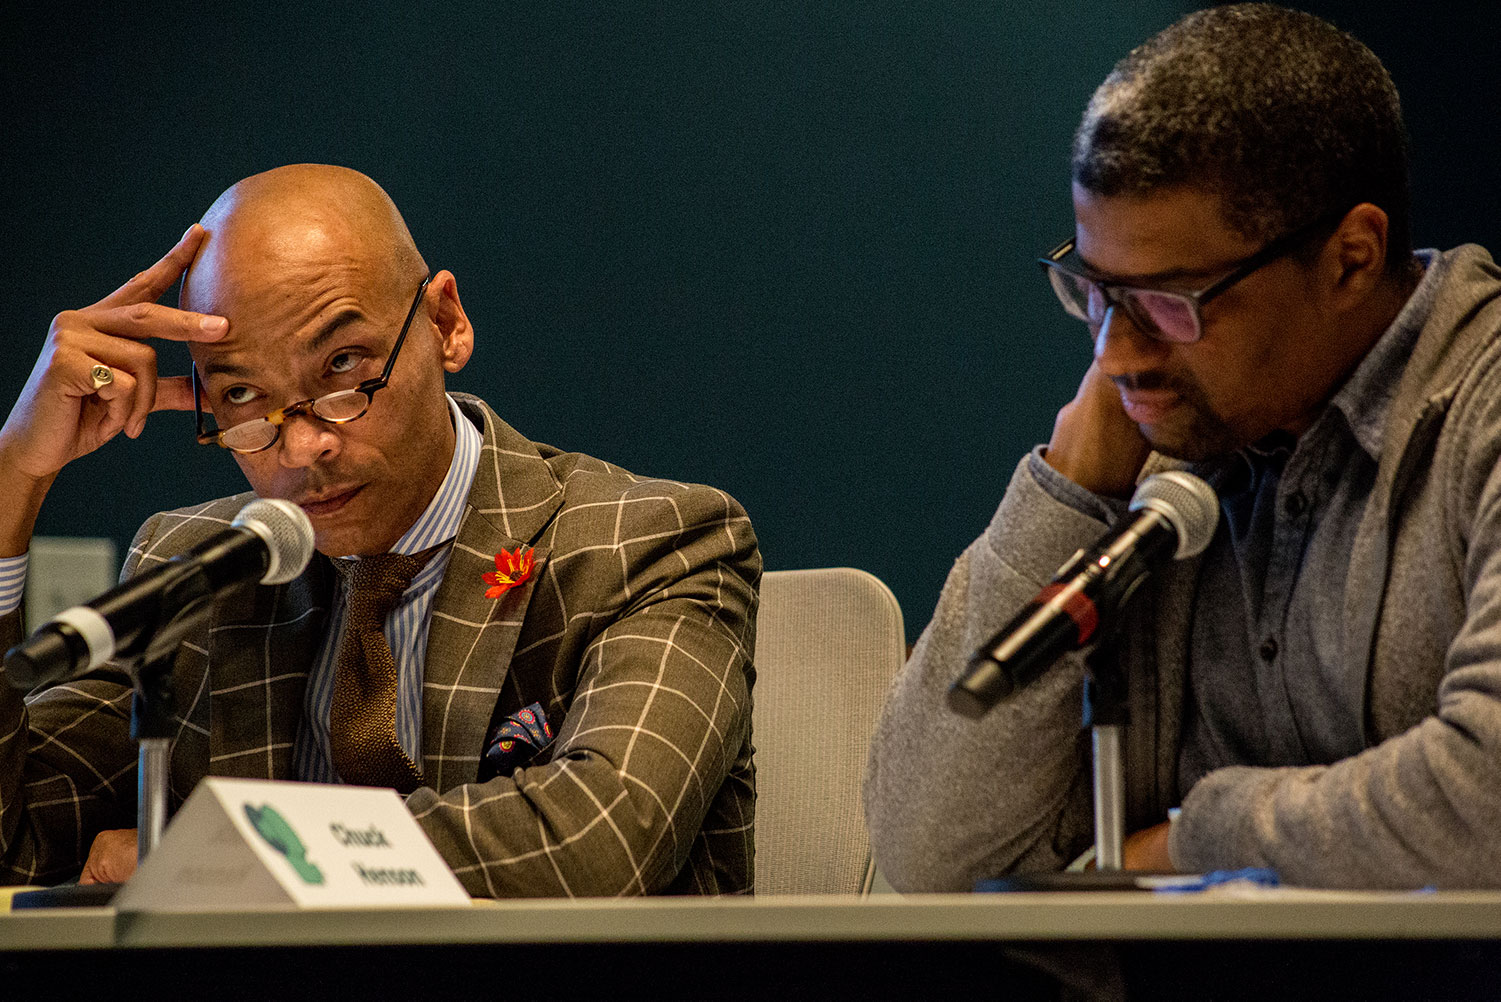 Chuck Henson, Trial Practice Professor of Law at University of Missouri School of Law, representing filmmaker Kamau Bilal at the mock deposition at the 2019 Based On A True Story conference. Photo: Alan Goforth